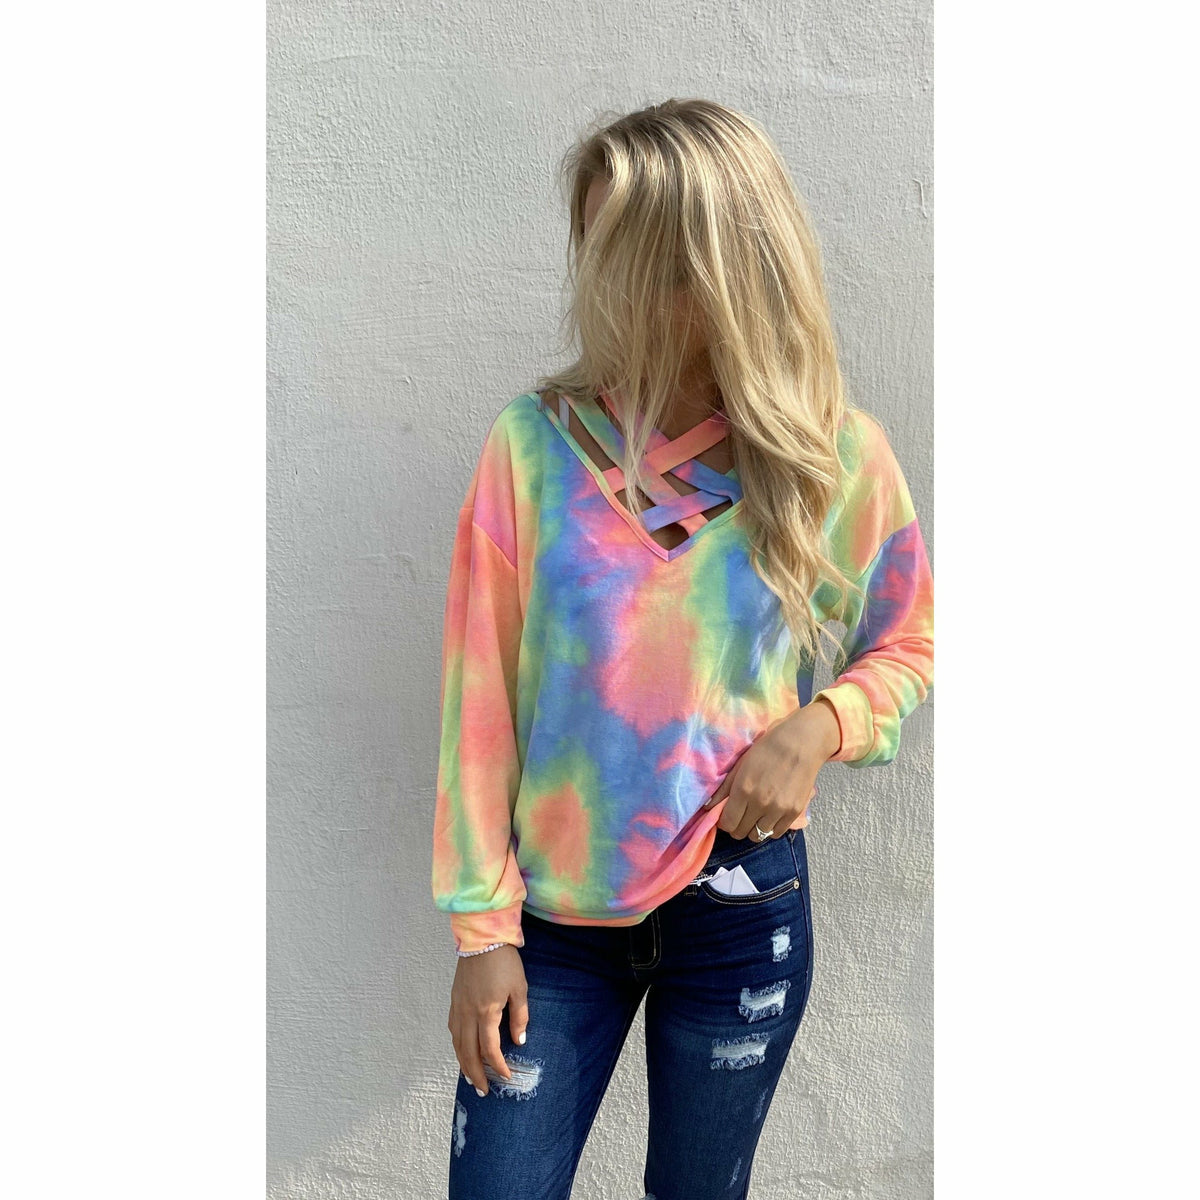 Dating Dream Criss Cross Longsleeve top